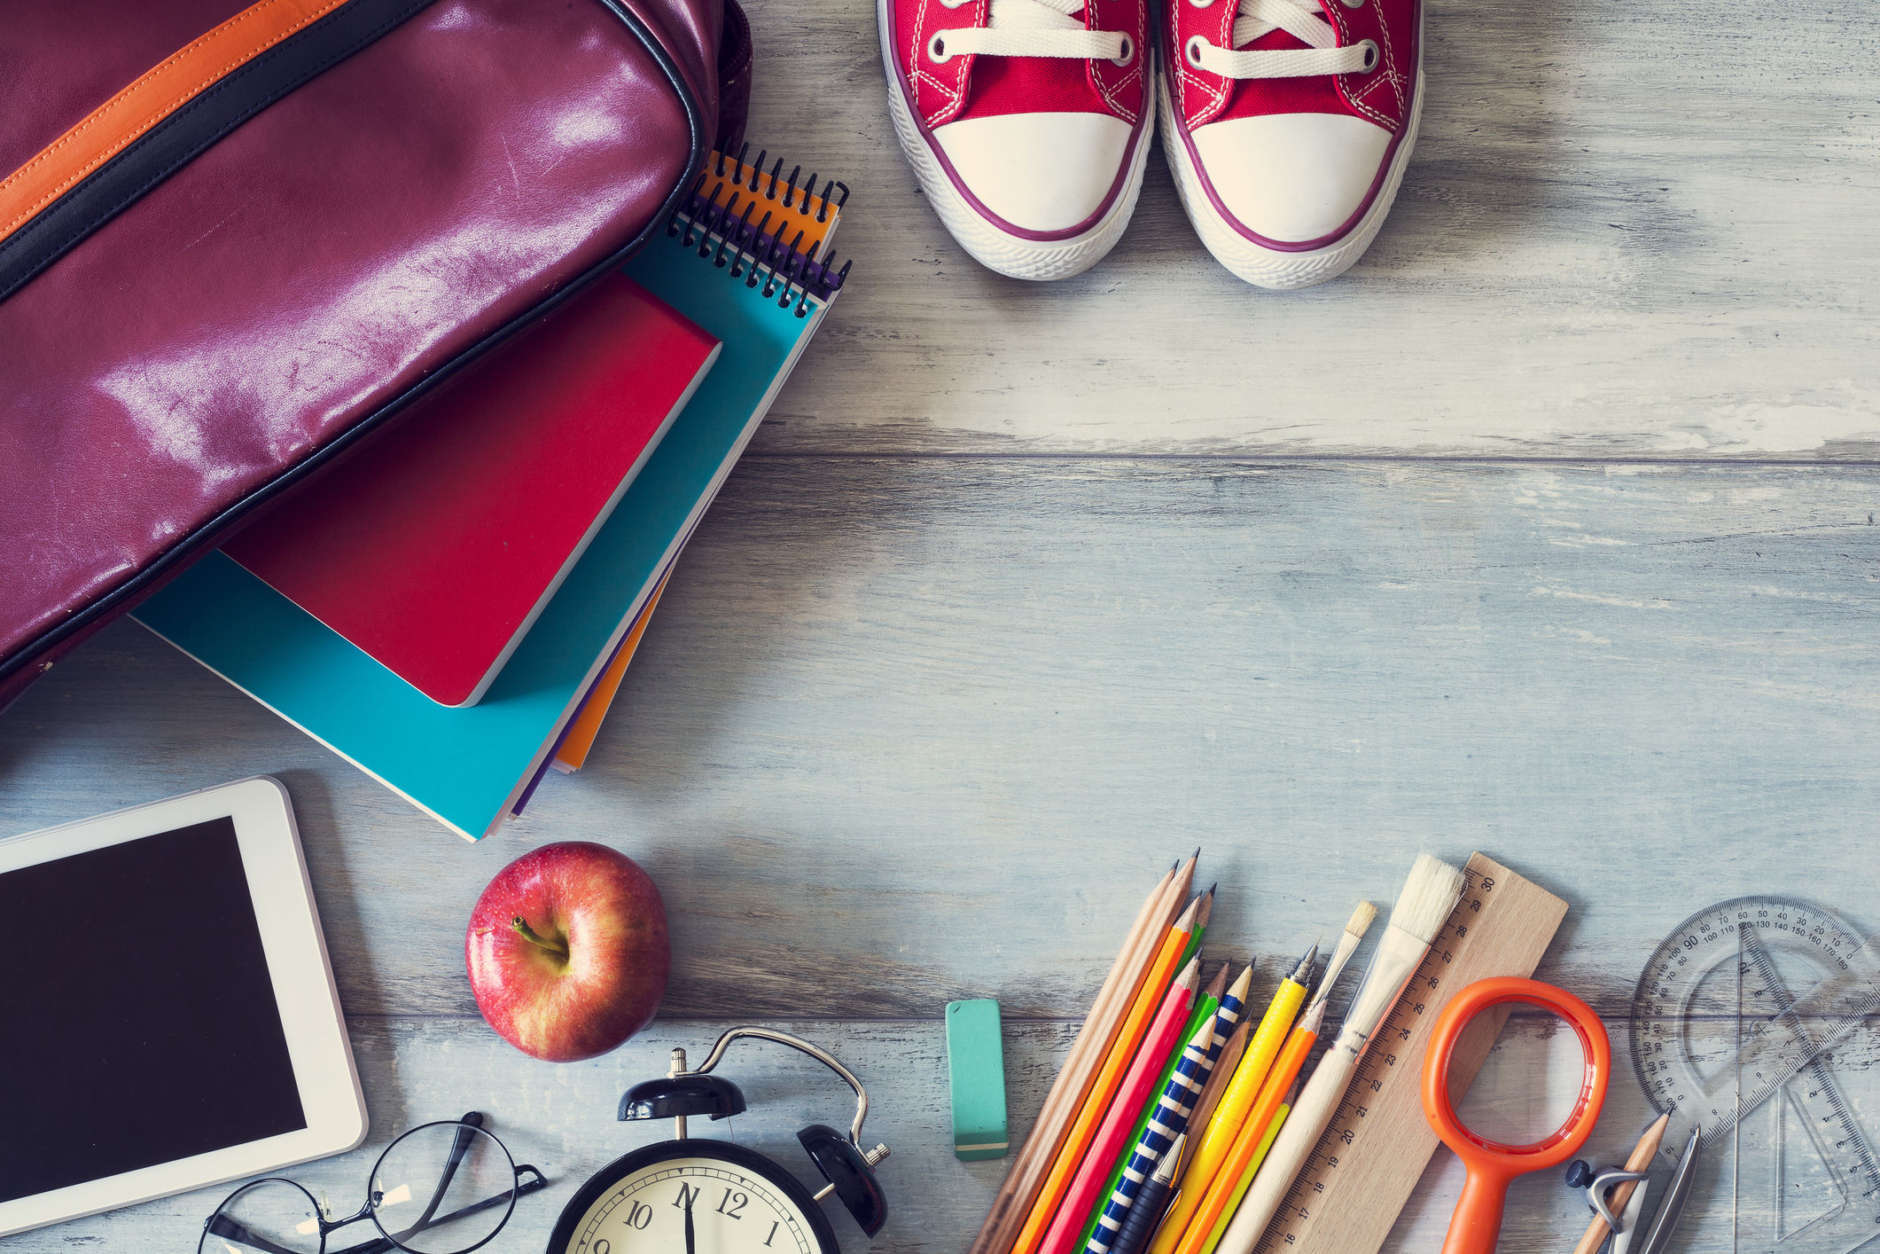 Want to give back to your community? Many school districts are holding school supply drives and fundraisers to help students start the school year on the right foot. Here's how you can help. (Thinkstock)